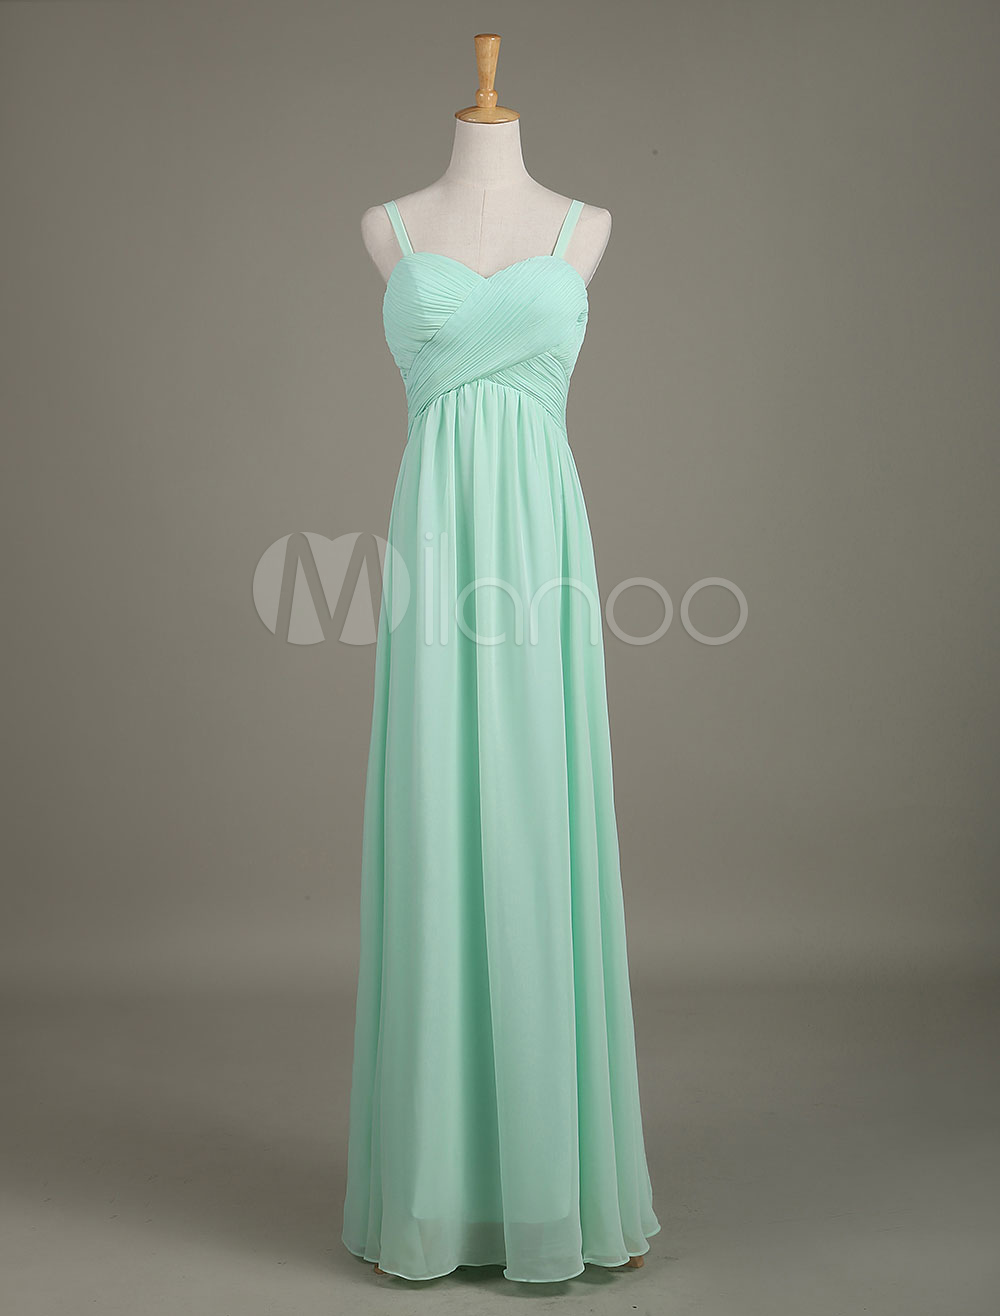 Buy Mint Green Bridesmaid Dress Sweetheart Chiffon Straps Draped A Line Long Wedding Party Dress for $153.99 in Milanoo store